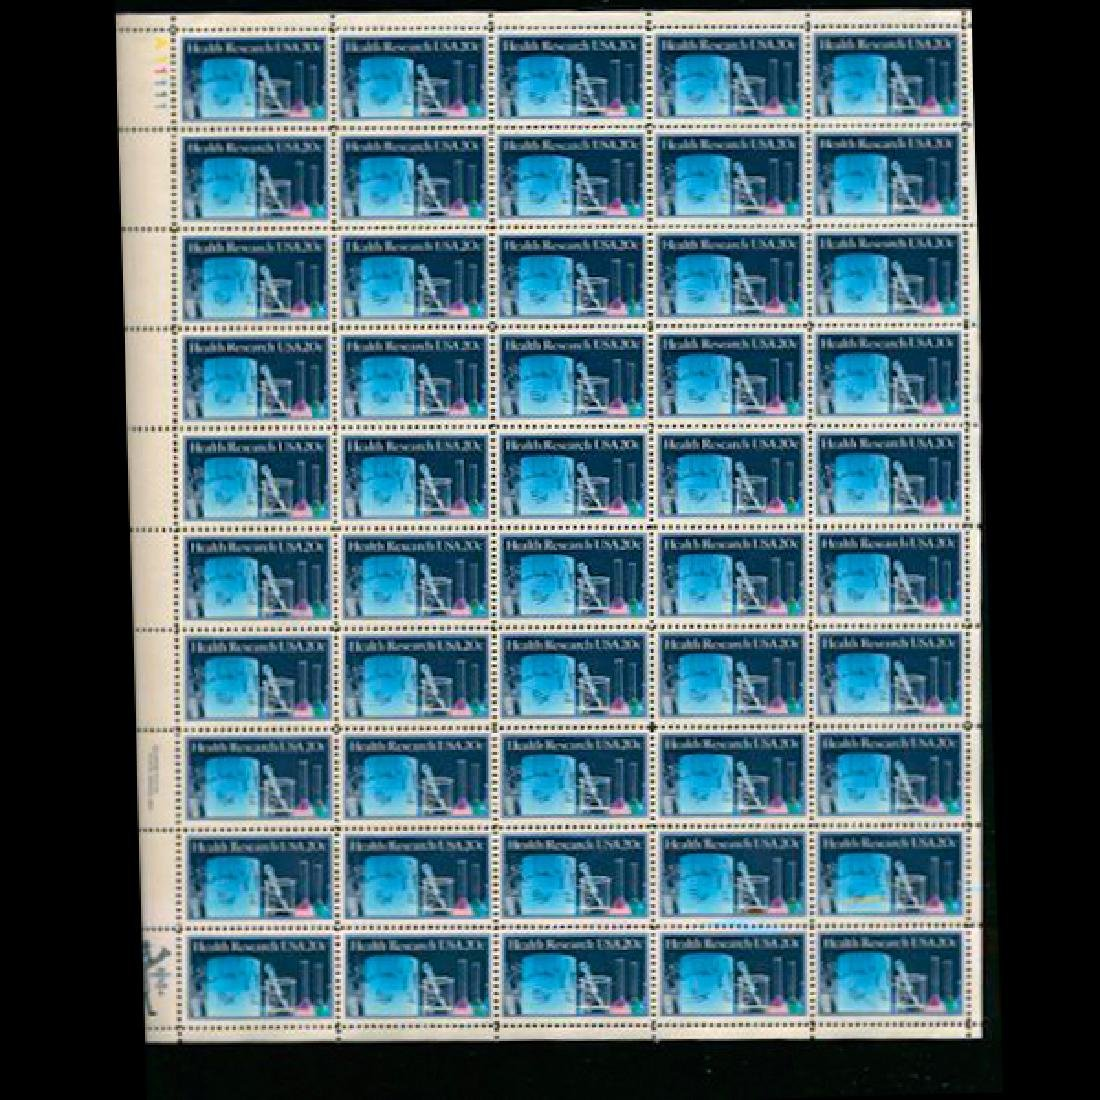 1984 US Sheet 20c Health Research Stamps MNH Error RARE